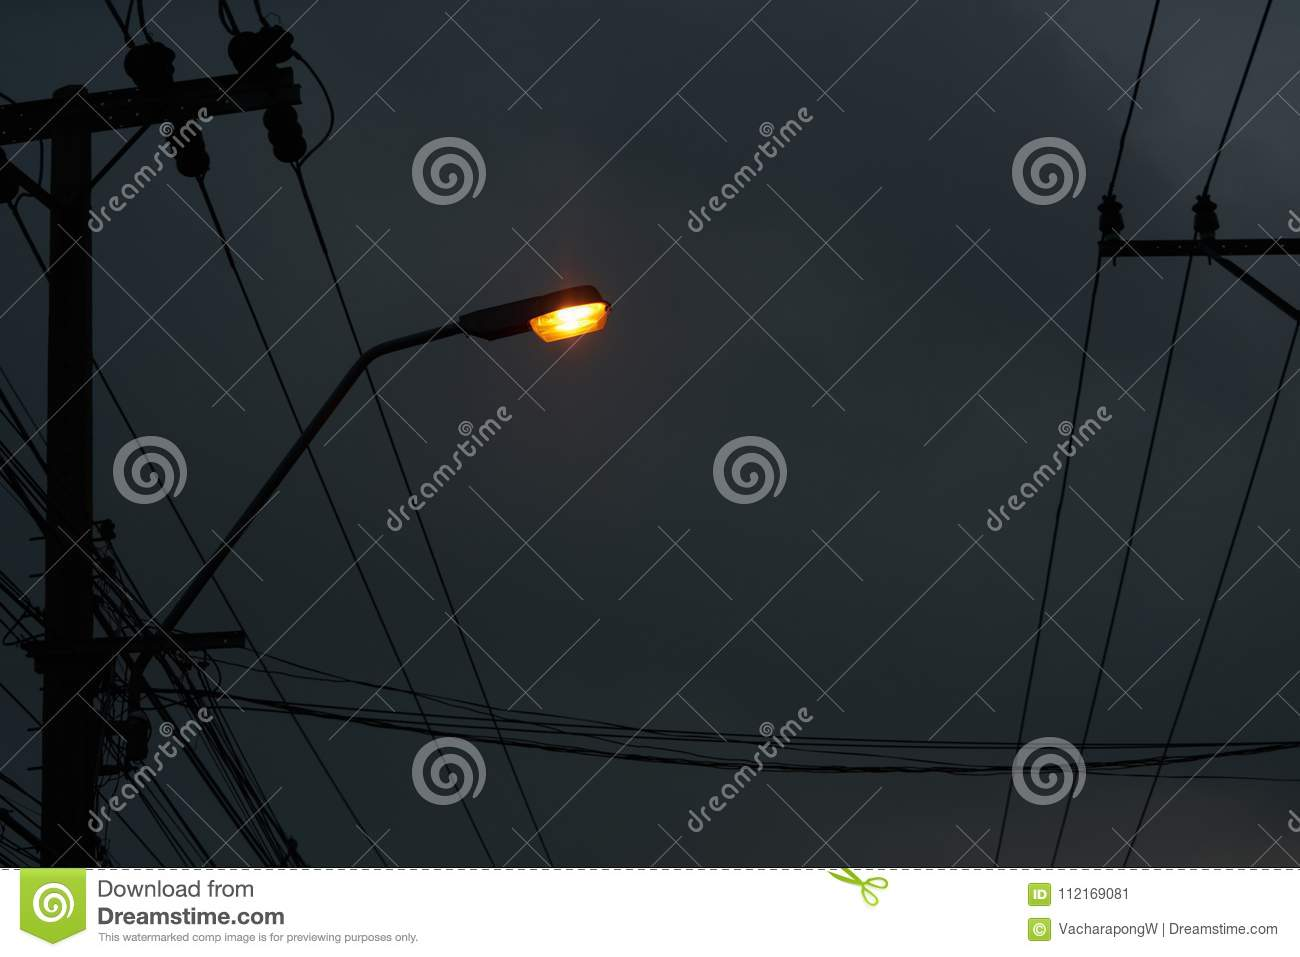 Light Lamp On Pole With Electric Wires Dark Night Sky Backgro Electrical Wiring Fixtures